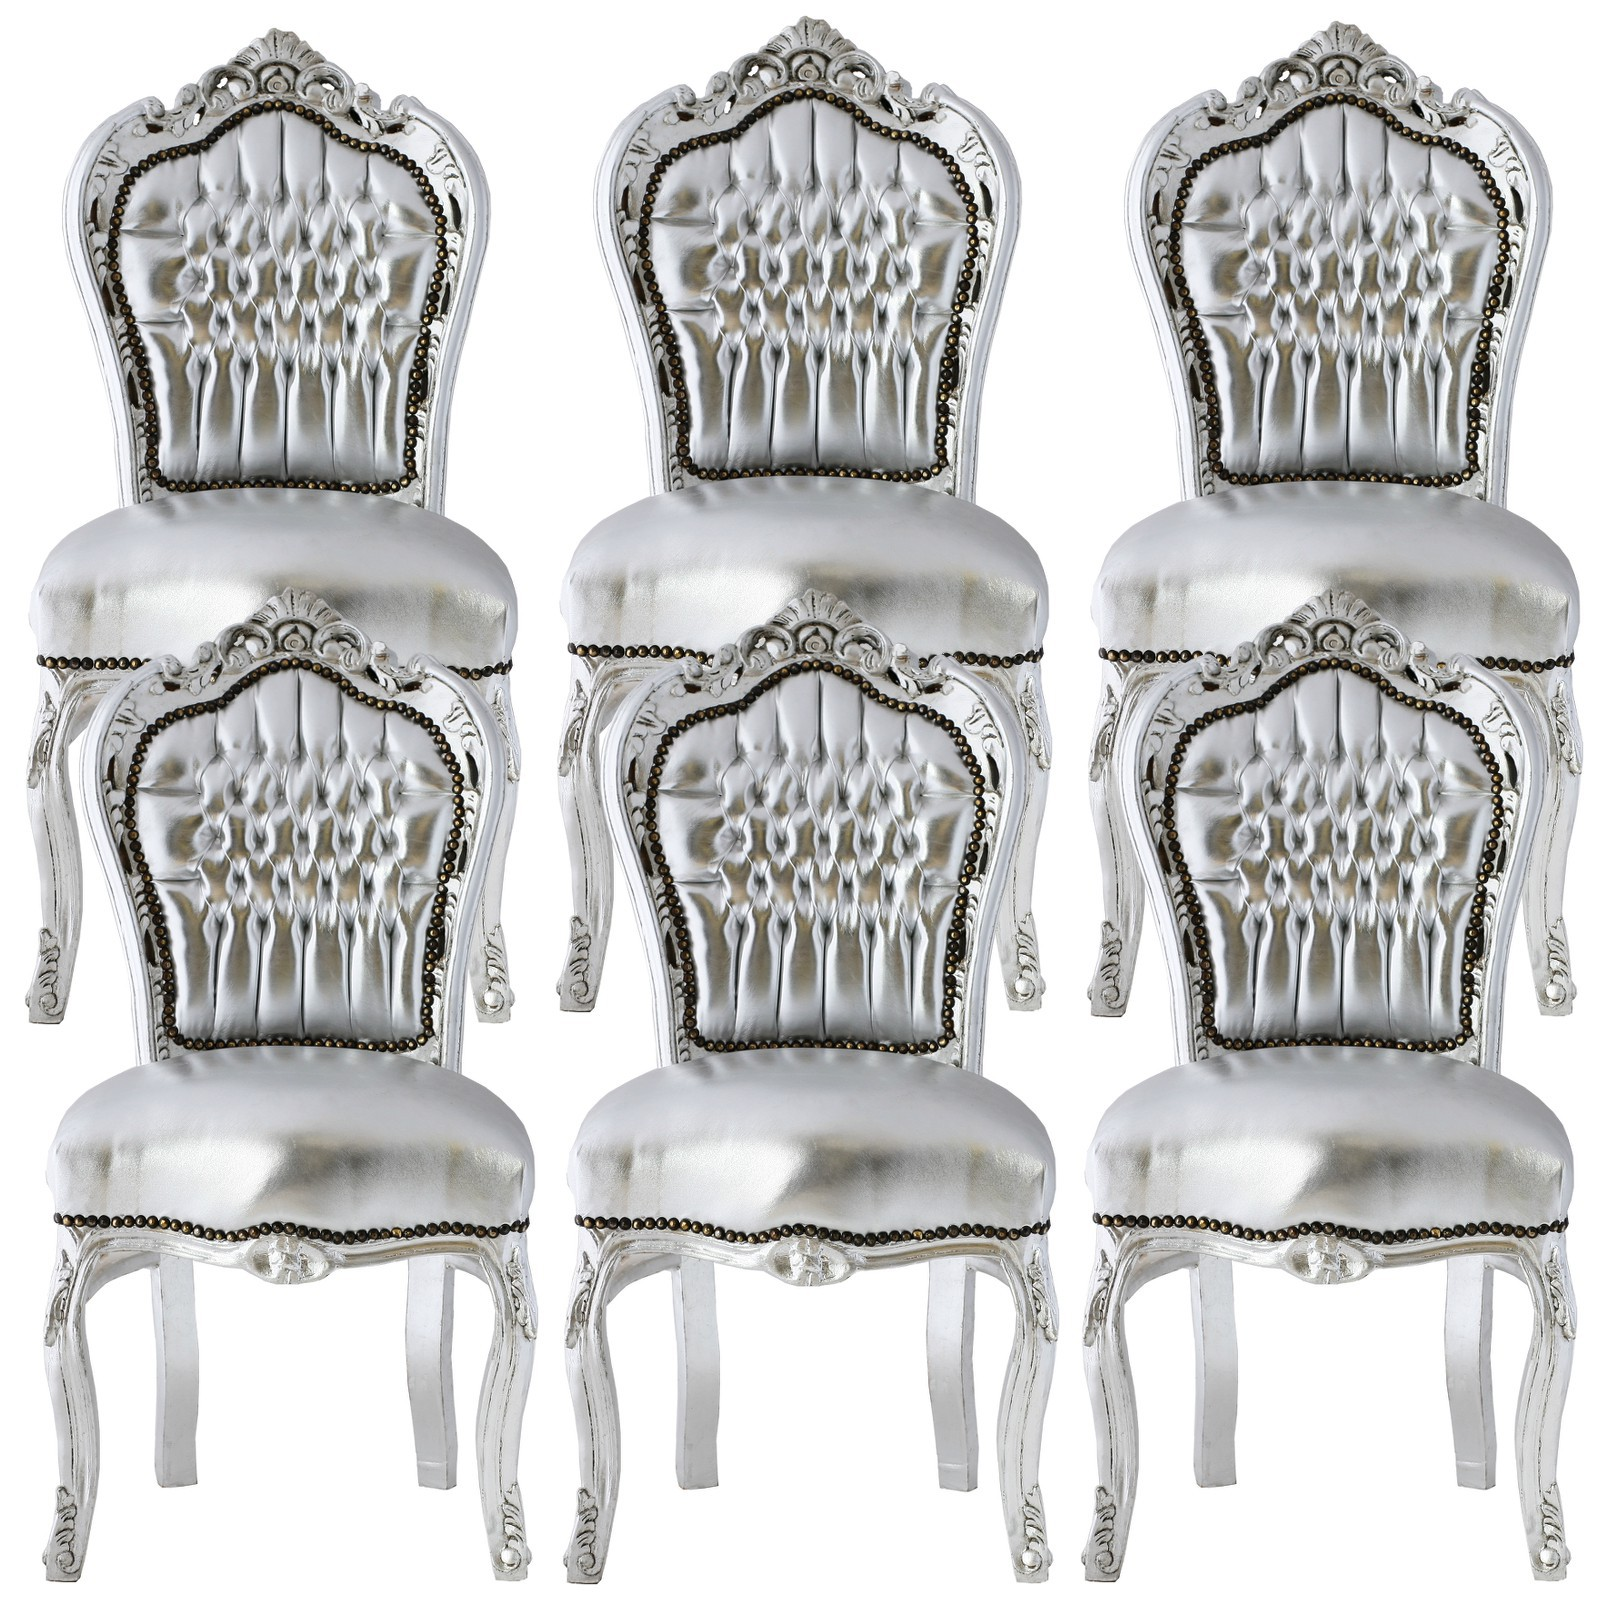 Luxurious Silver Dining Room Chair Set Baroque Furniture luxury-pure ...